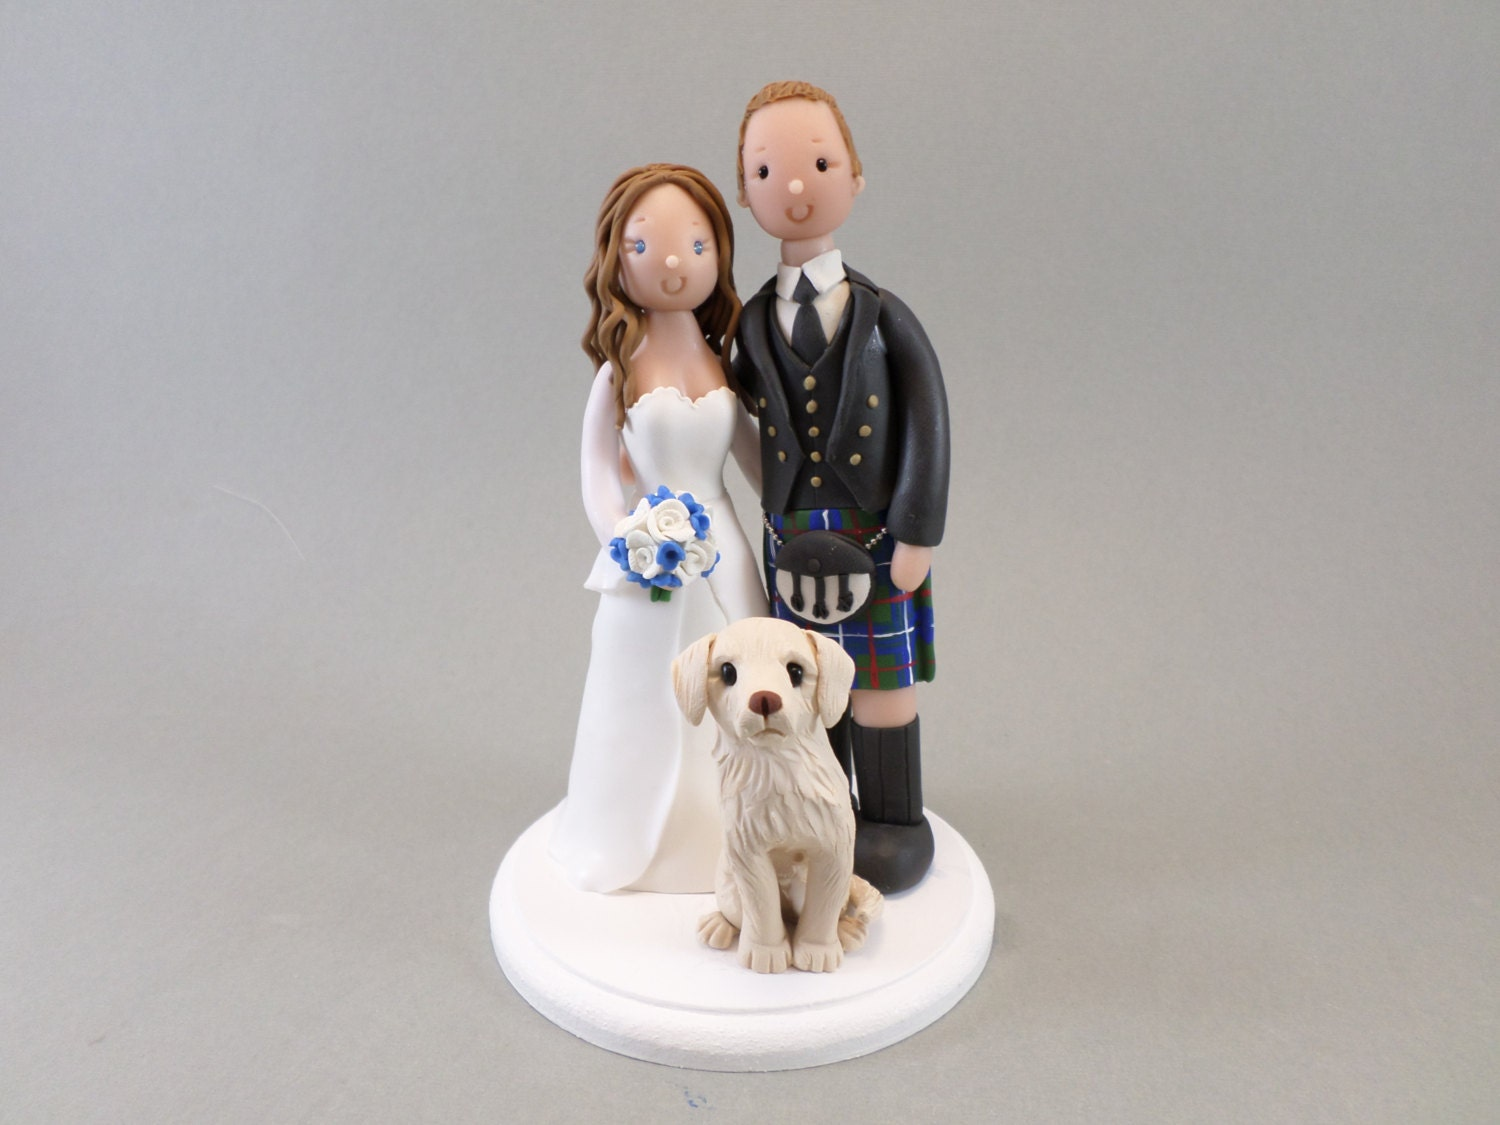 cheeky scottish wedding cake toppers cake topper customized scottish wedding amp groom with a 12550